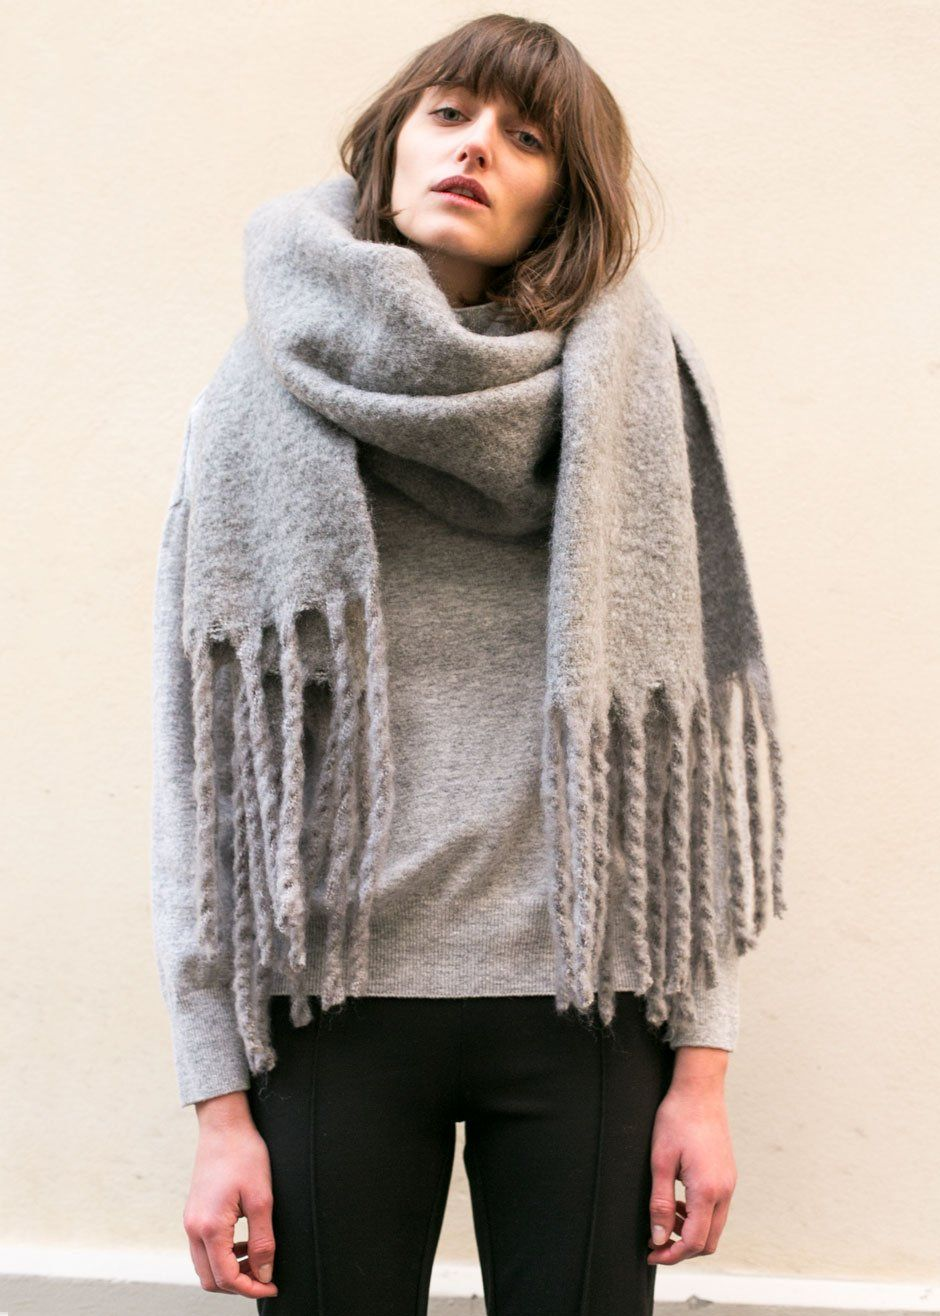 How to long wear scarf with fringe exclusive photo